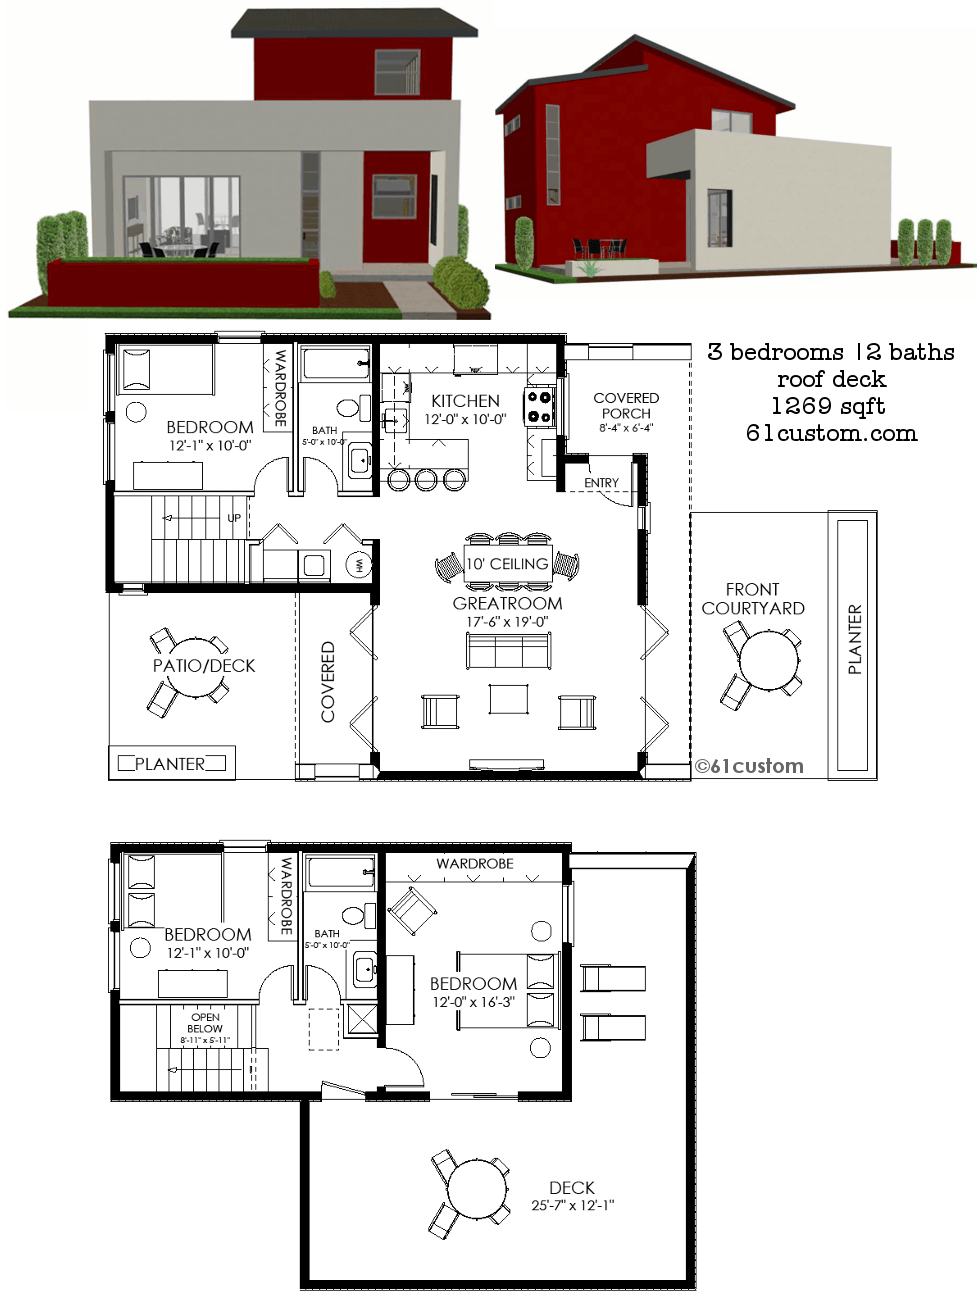 Contemporary small house plan 61custom contemporary Small modern home floor plans